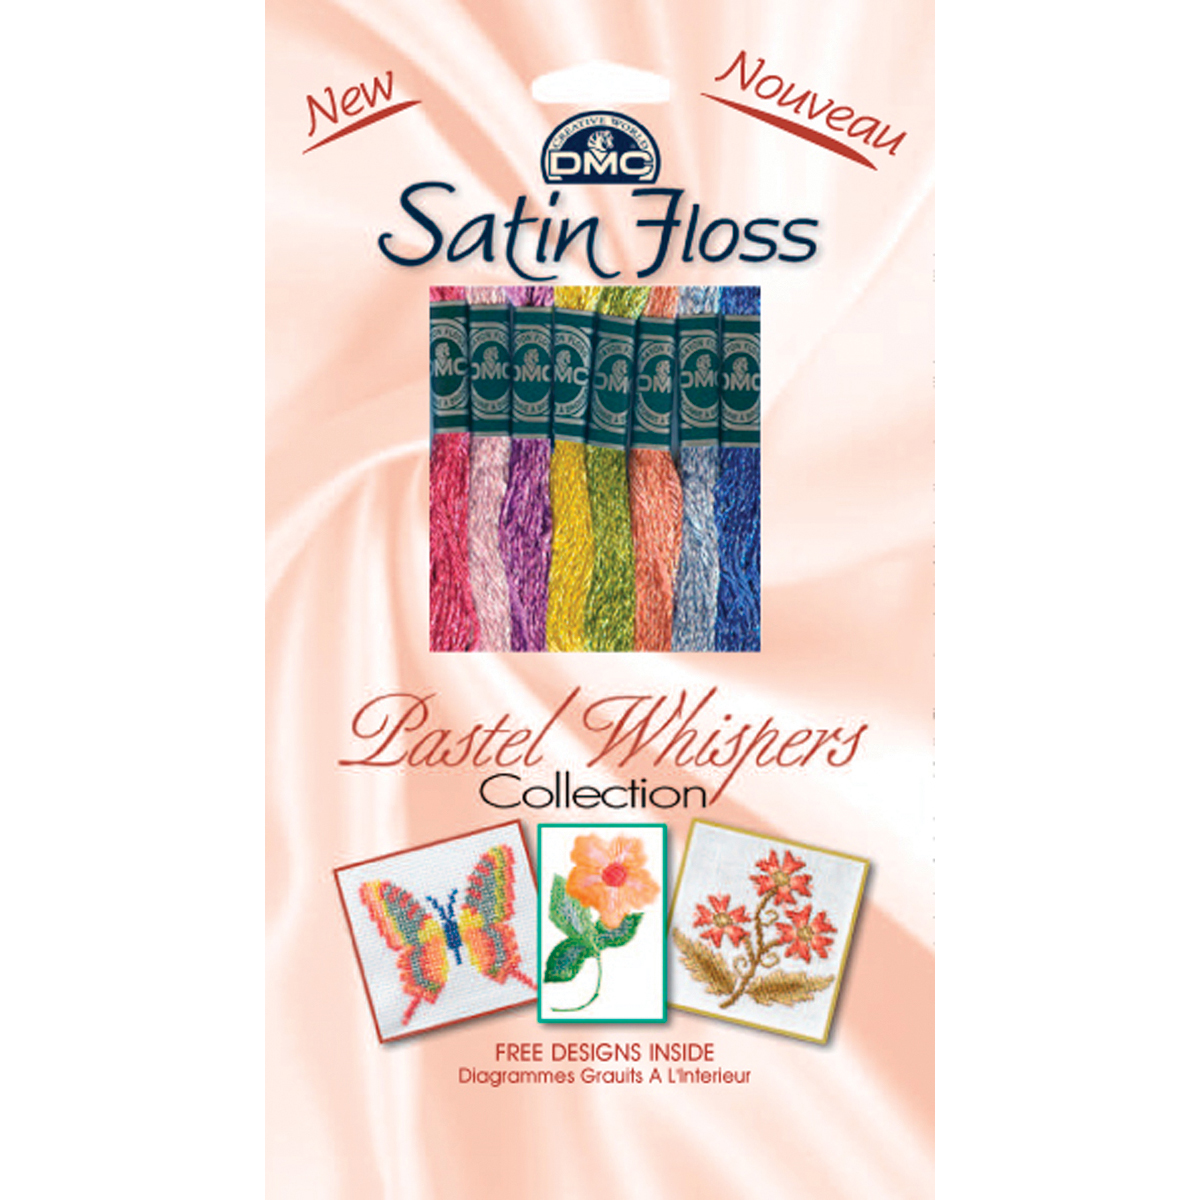 DMC Satin Floss Collection Pack 8/pkg, Pastel Whispers